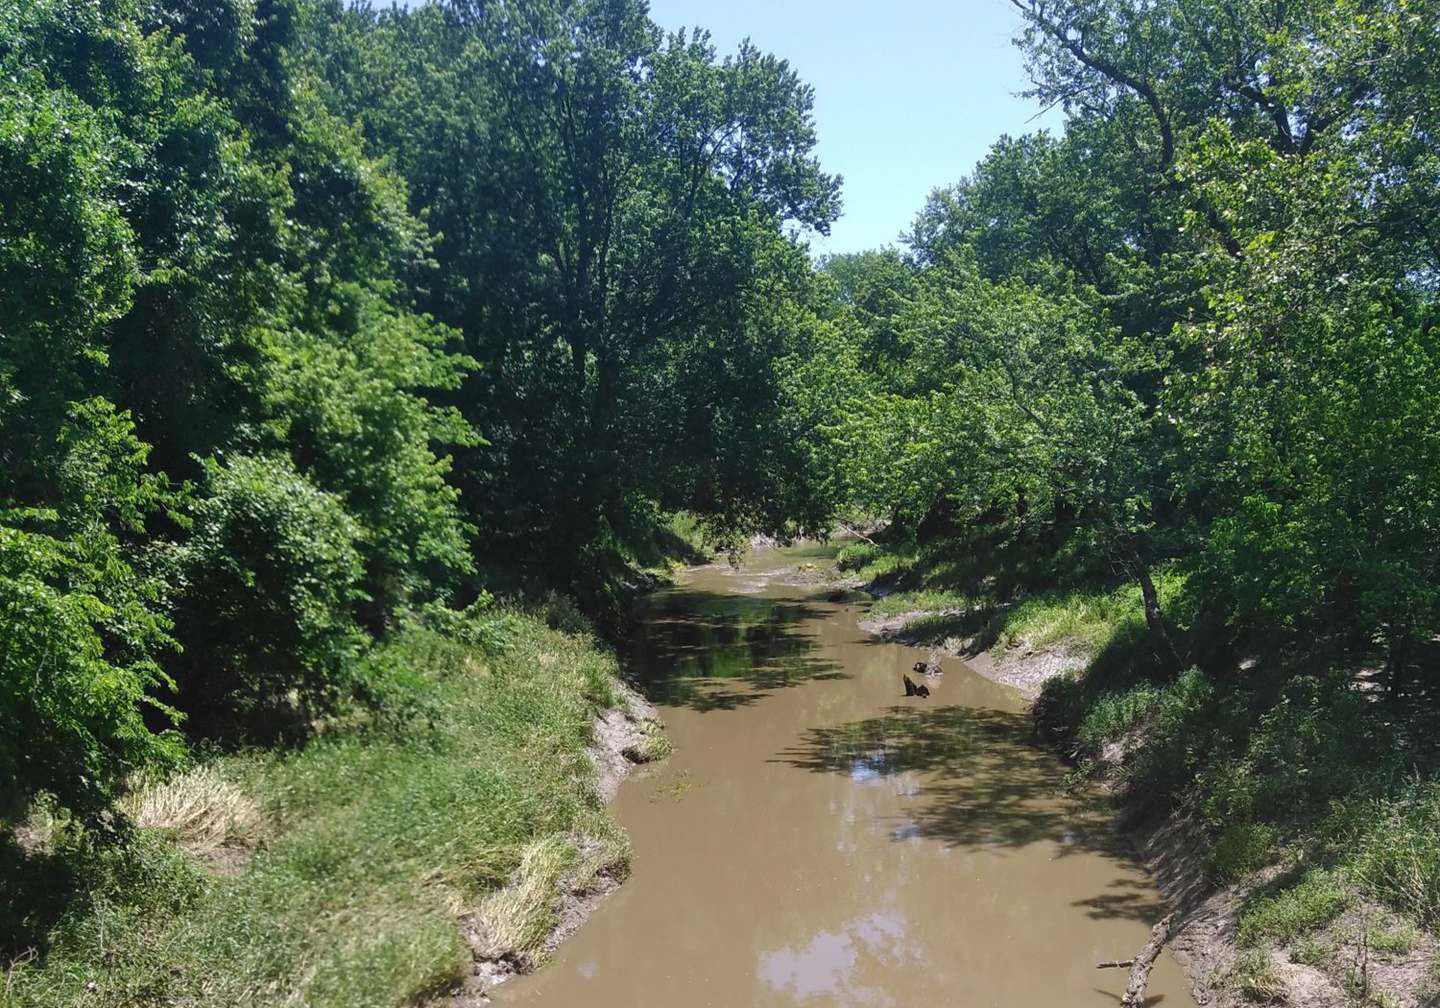 A narrow creek of brown water with trees on either size and a small patch of blue sky at the top.